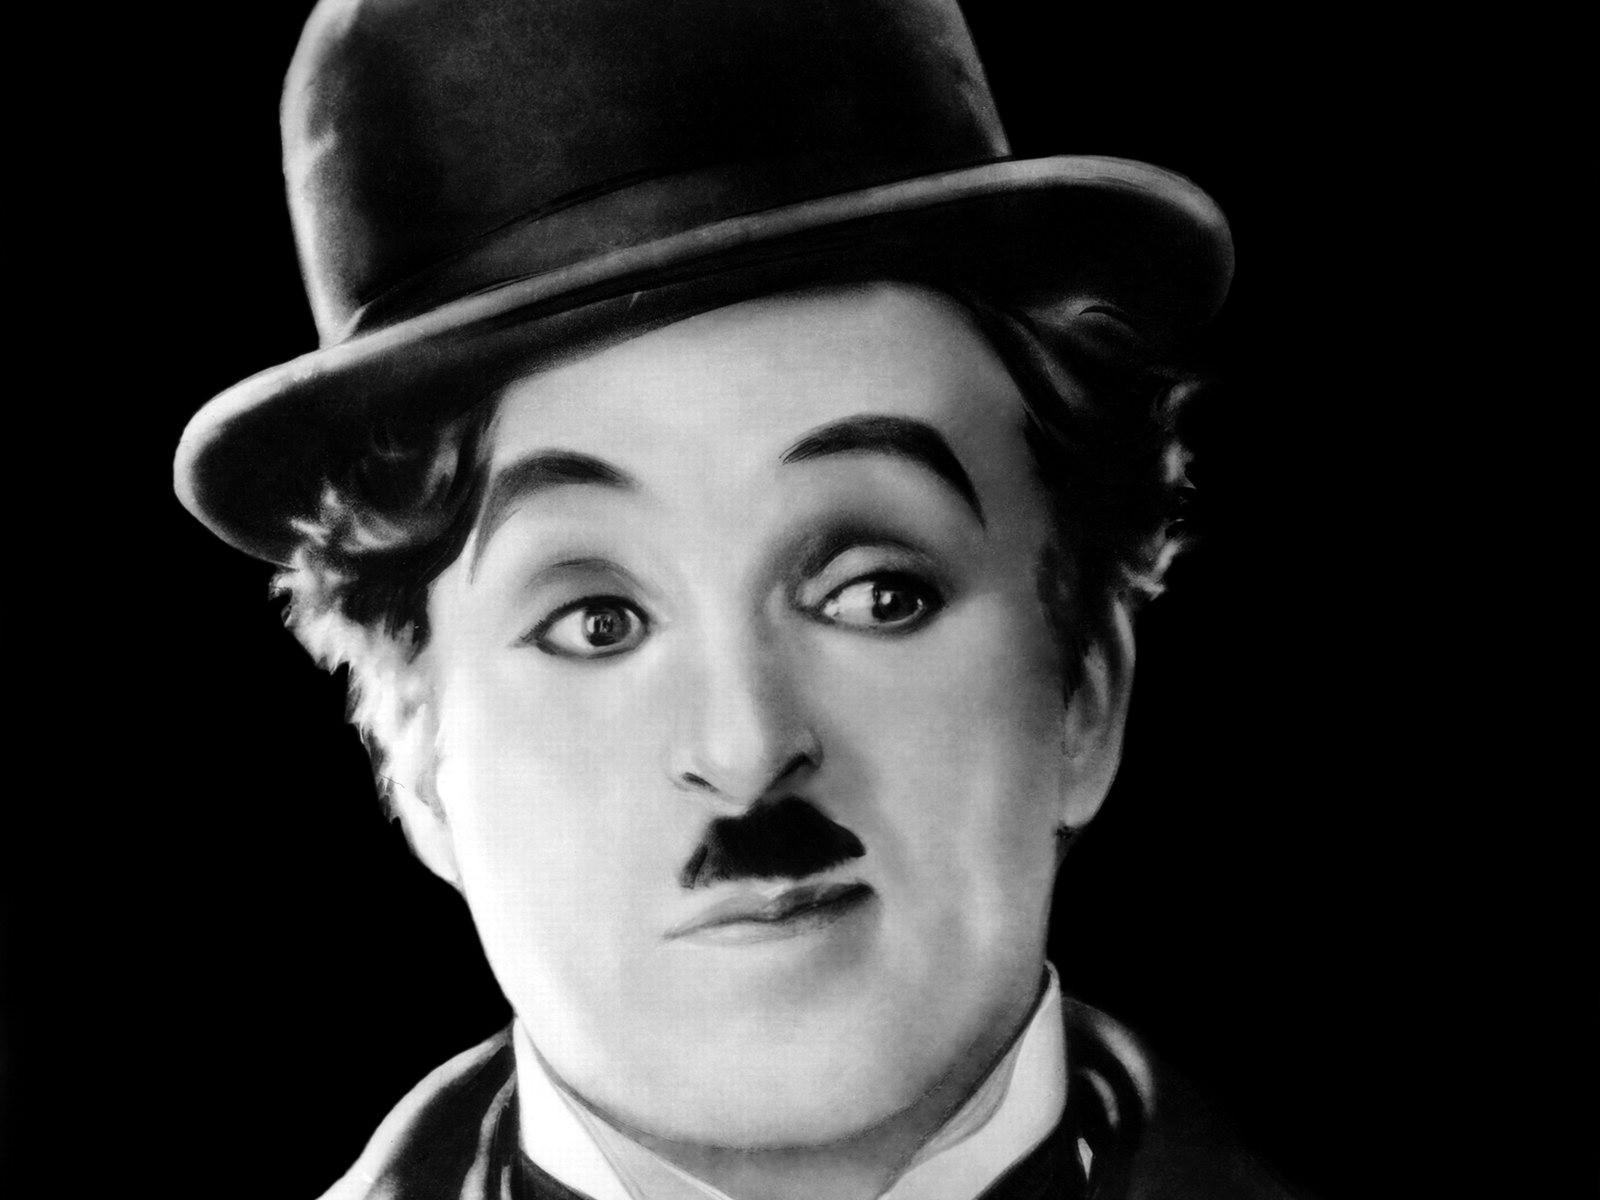 Charlie Chaplin spent the last 25 years of his life in Switzerland.